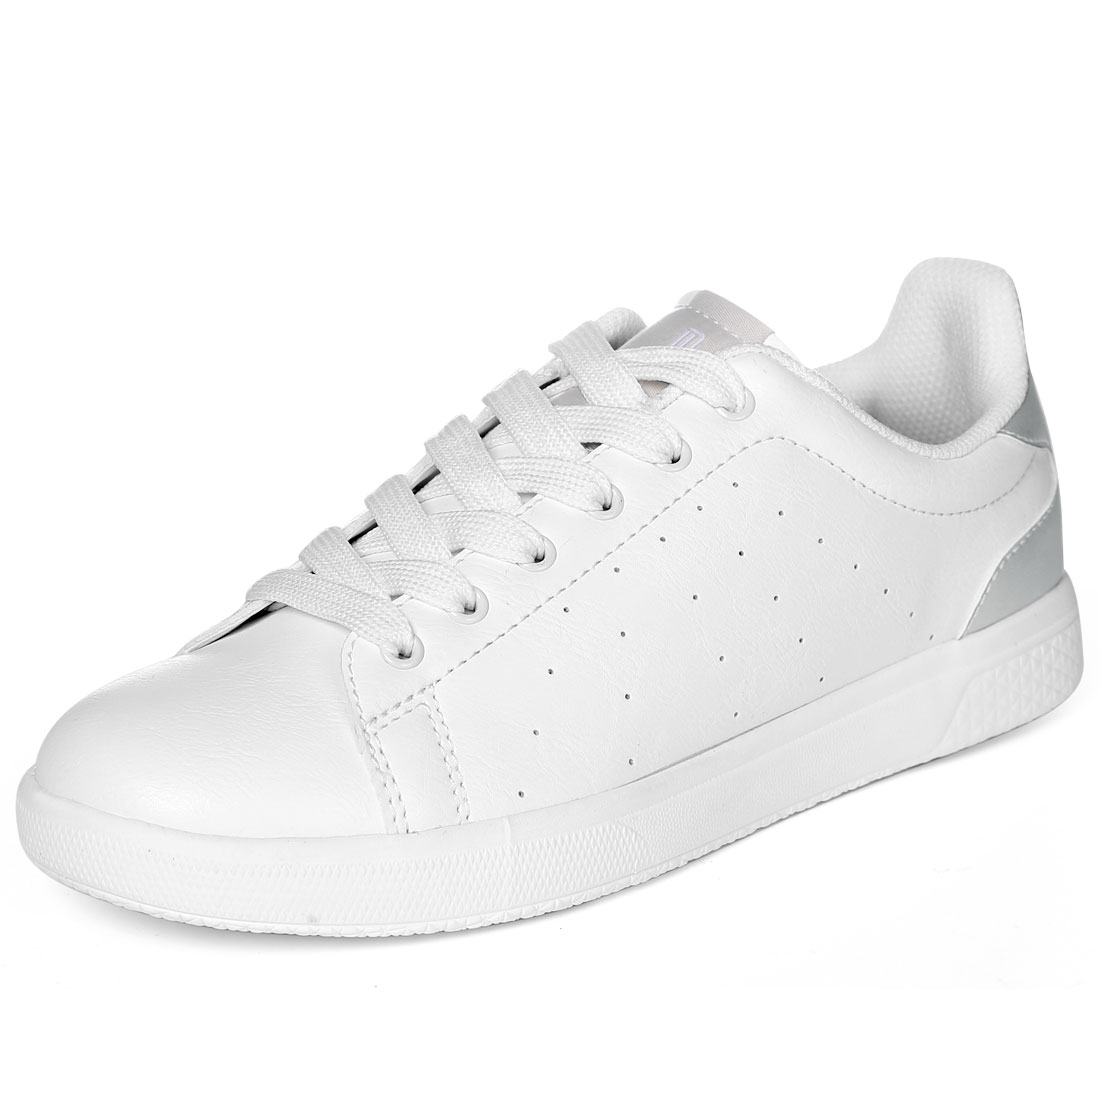 PYPE Women Round Toe Low Top Lace Up Sneakers White US 5